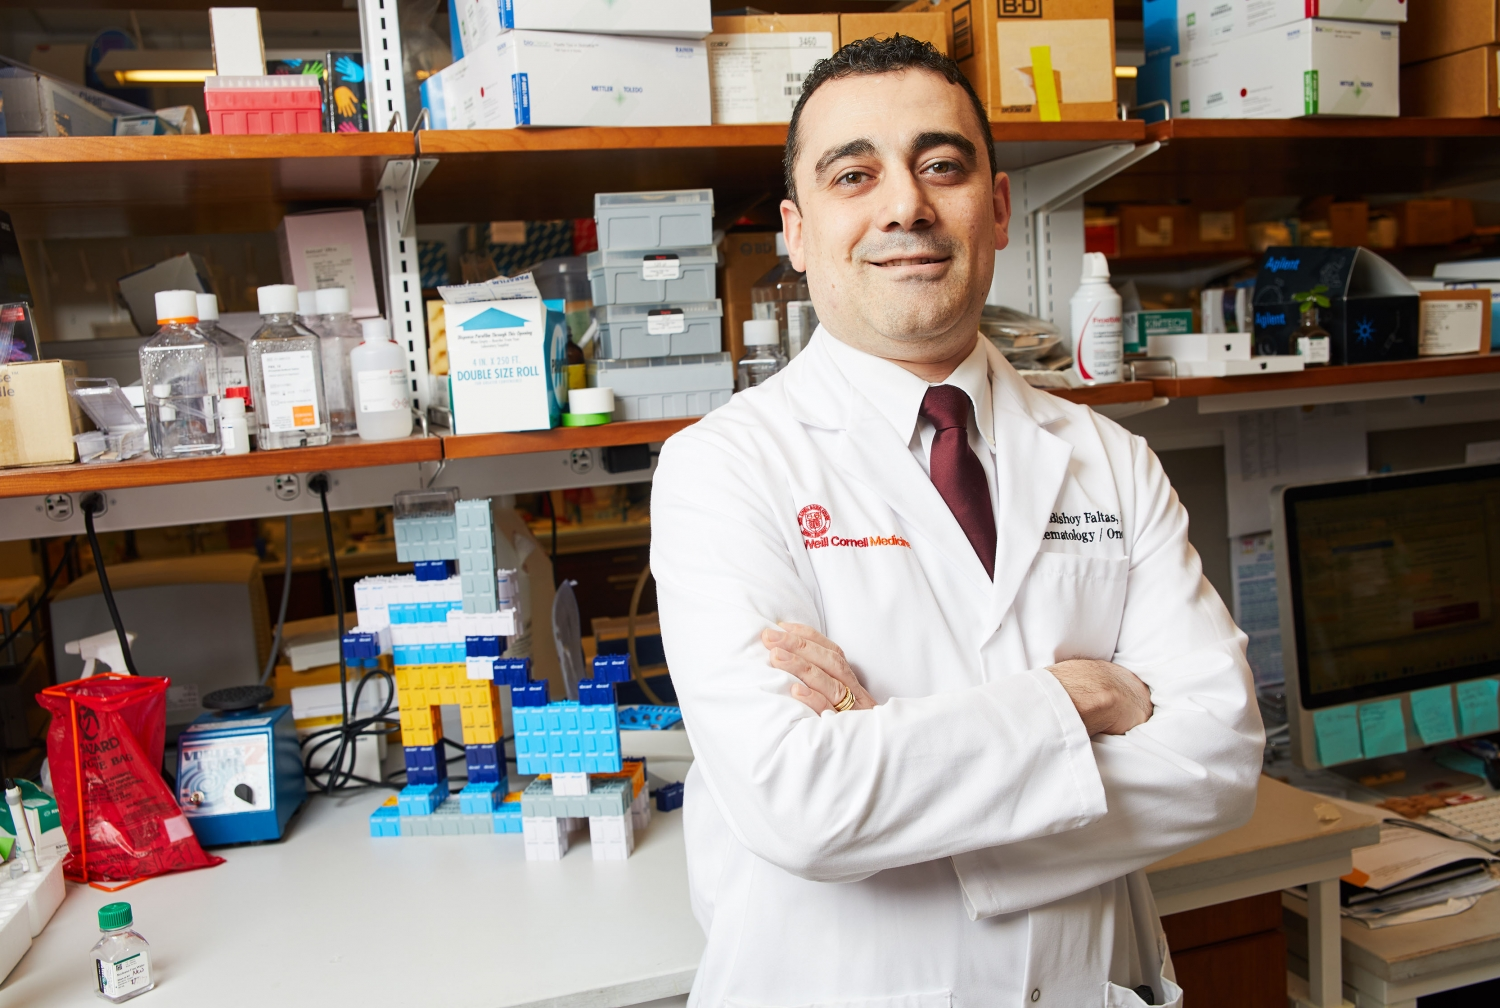 Dr. Bishoy Faltas. Photo credit: Travis Curry